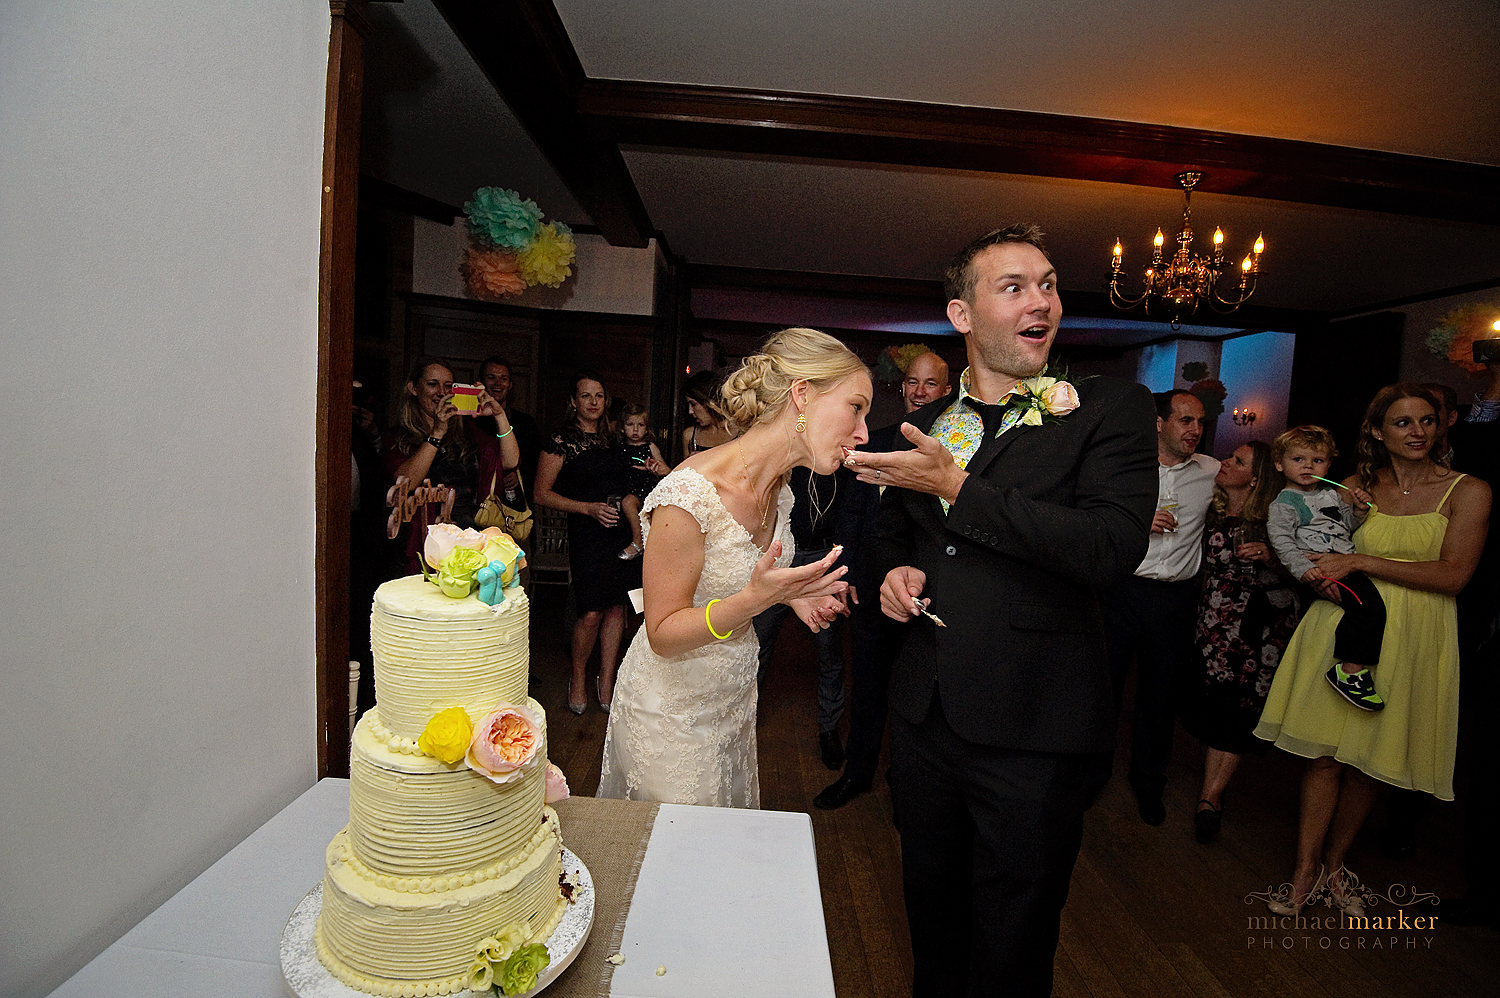 Documentary wedding photography moment of Bride licking cake off grooms fingers during cake cutting at wedding